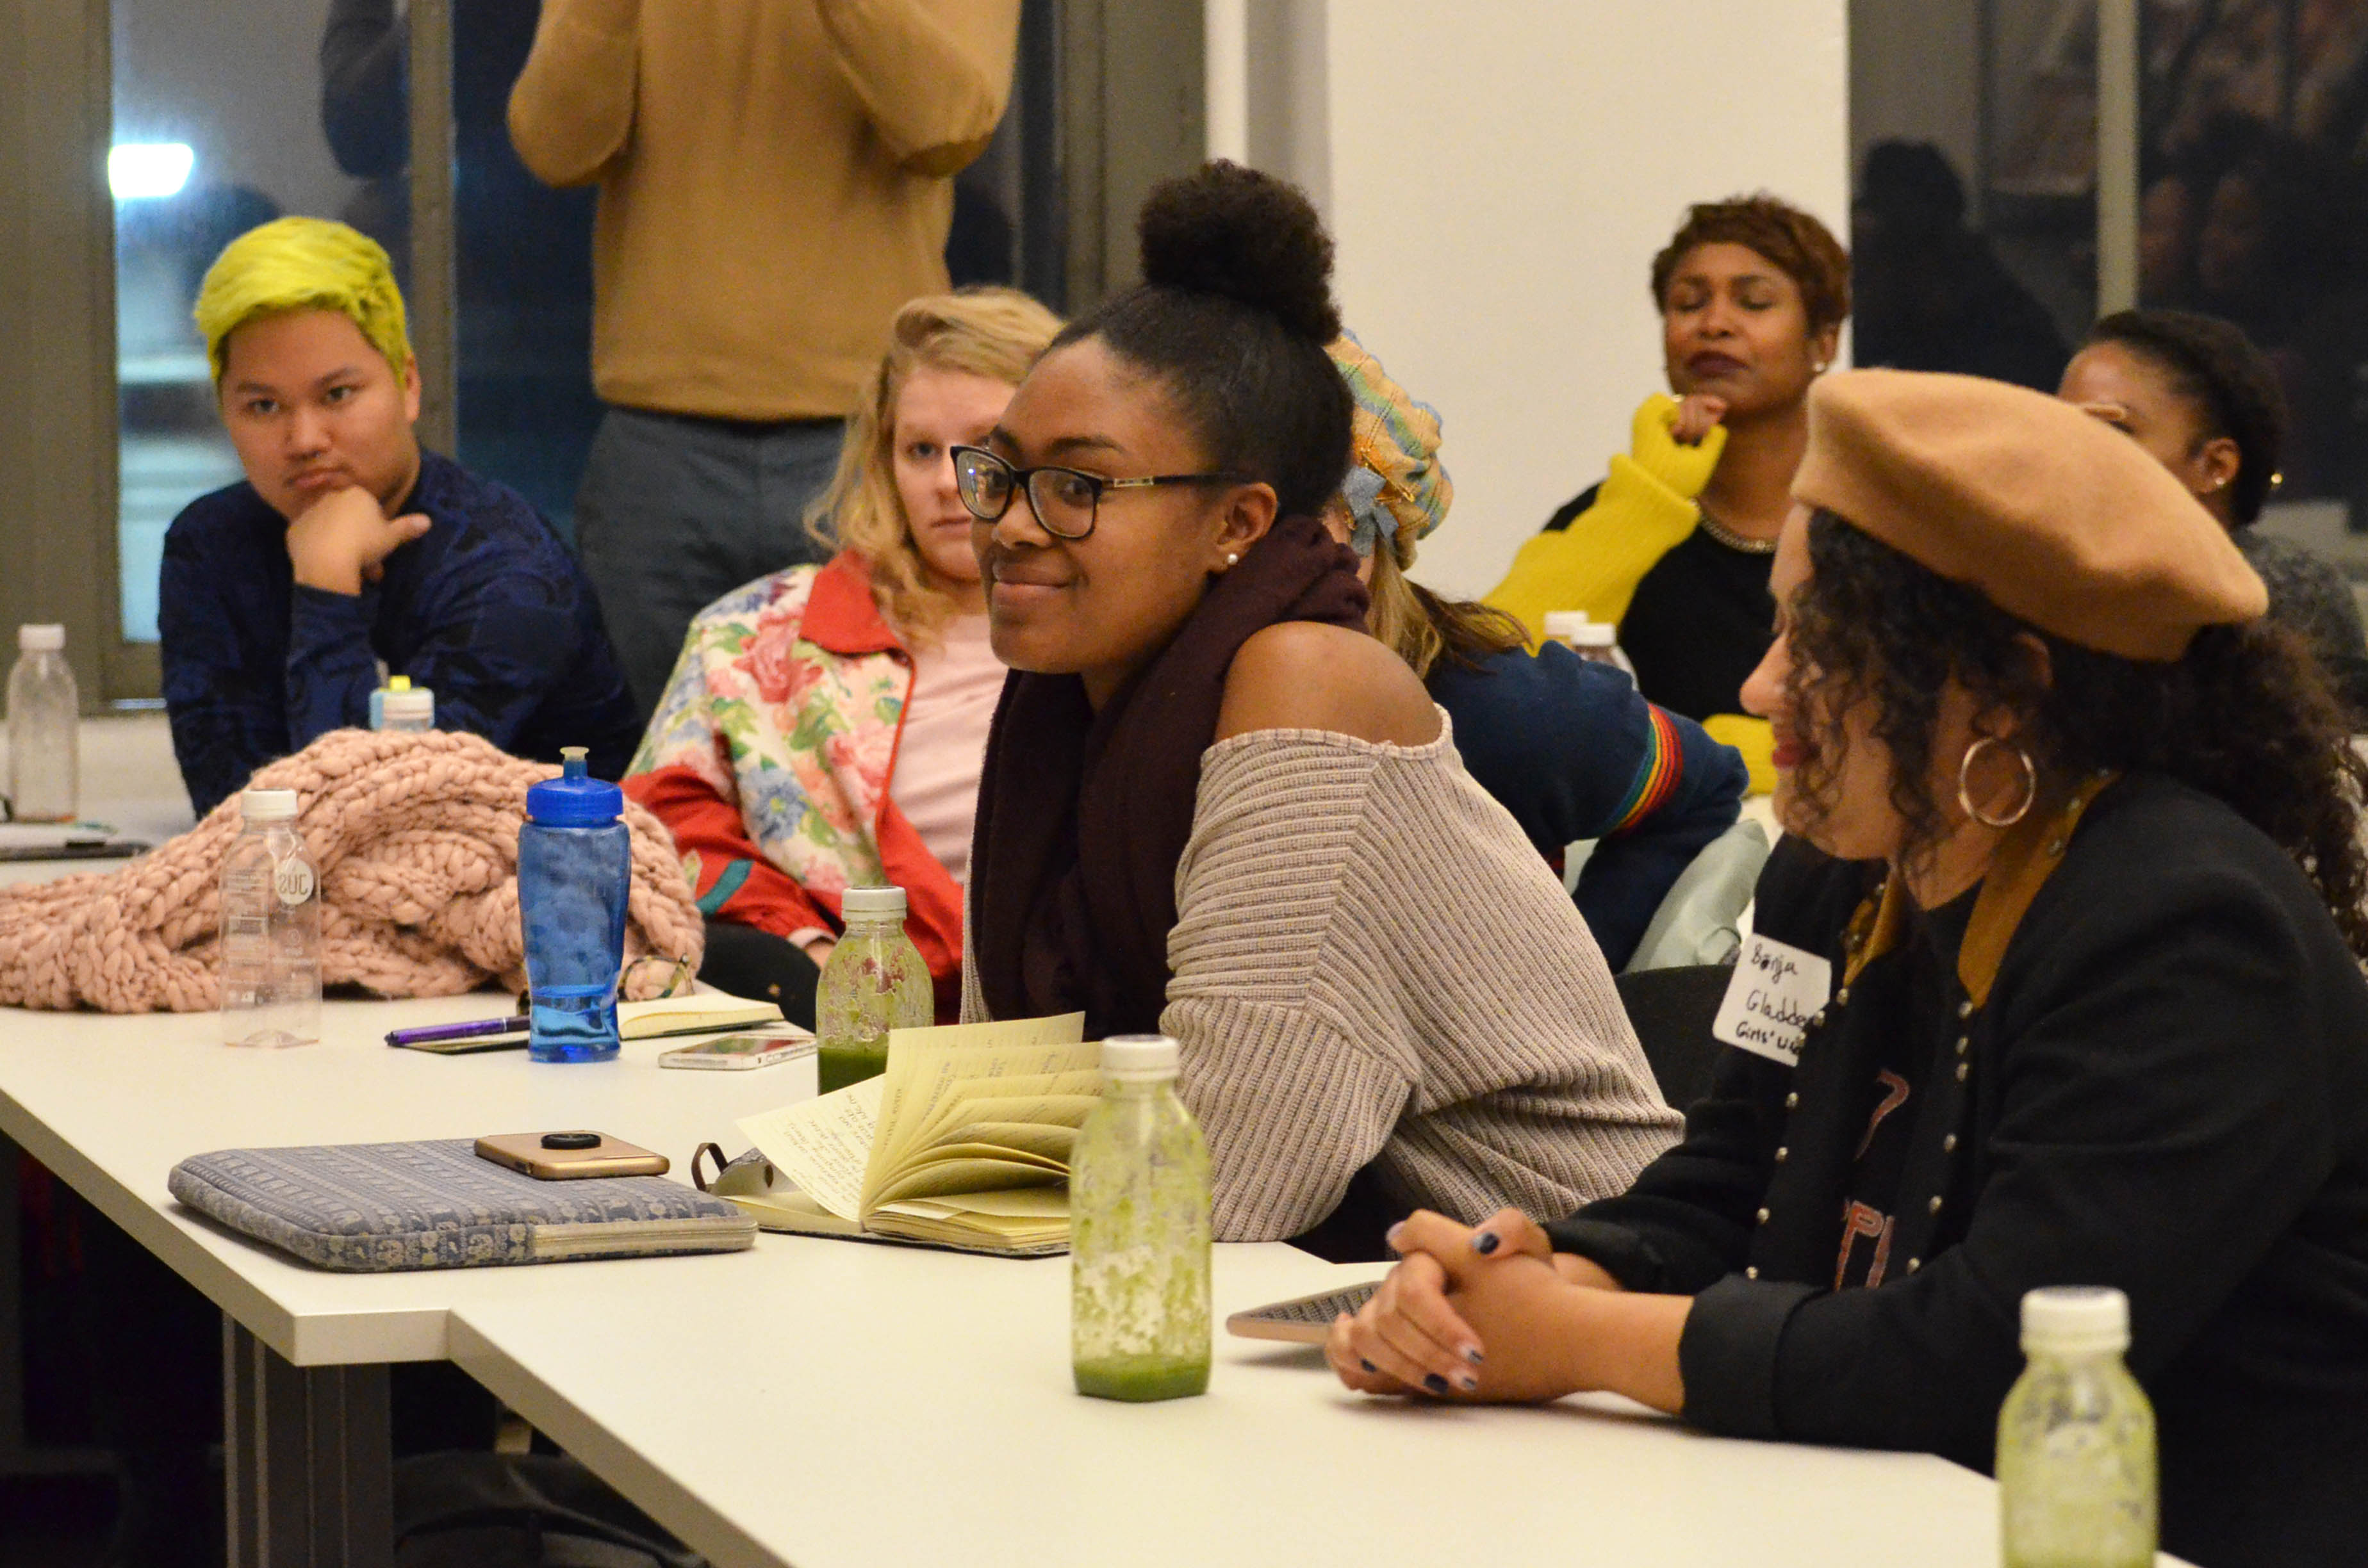 Student listens to panel discussion during the 2019 NYC Studio diversity event